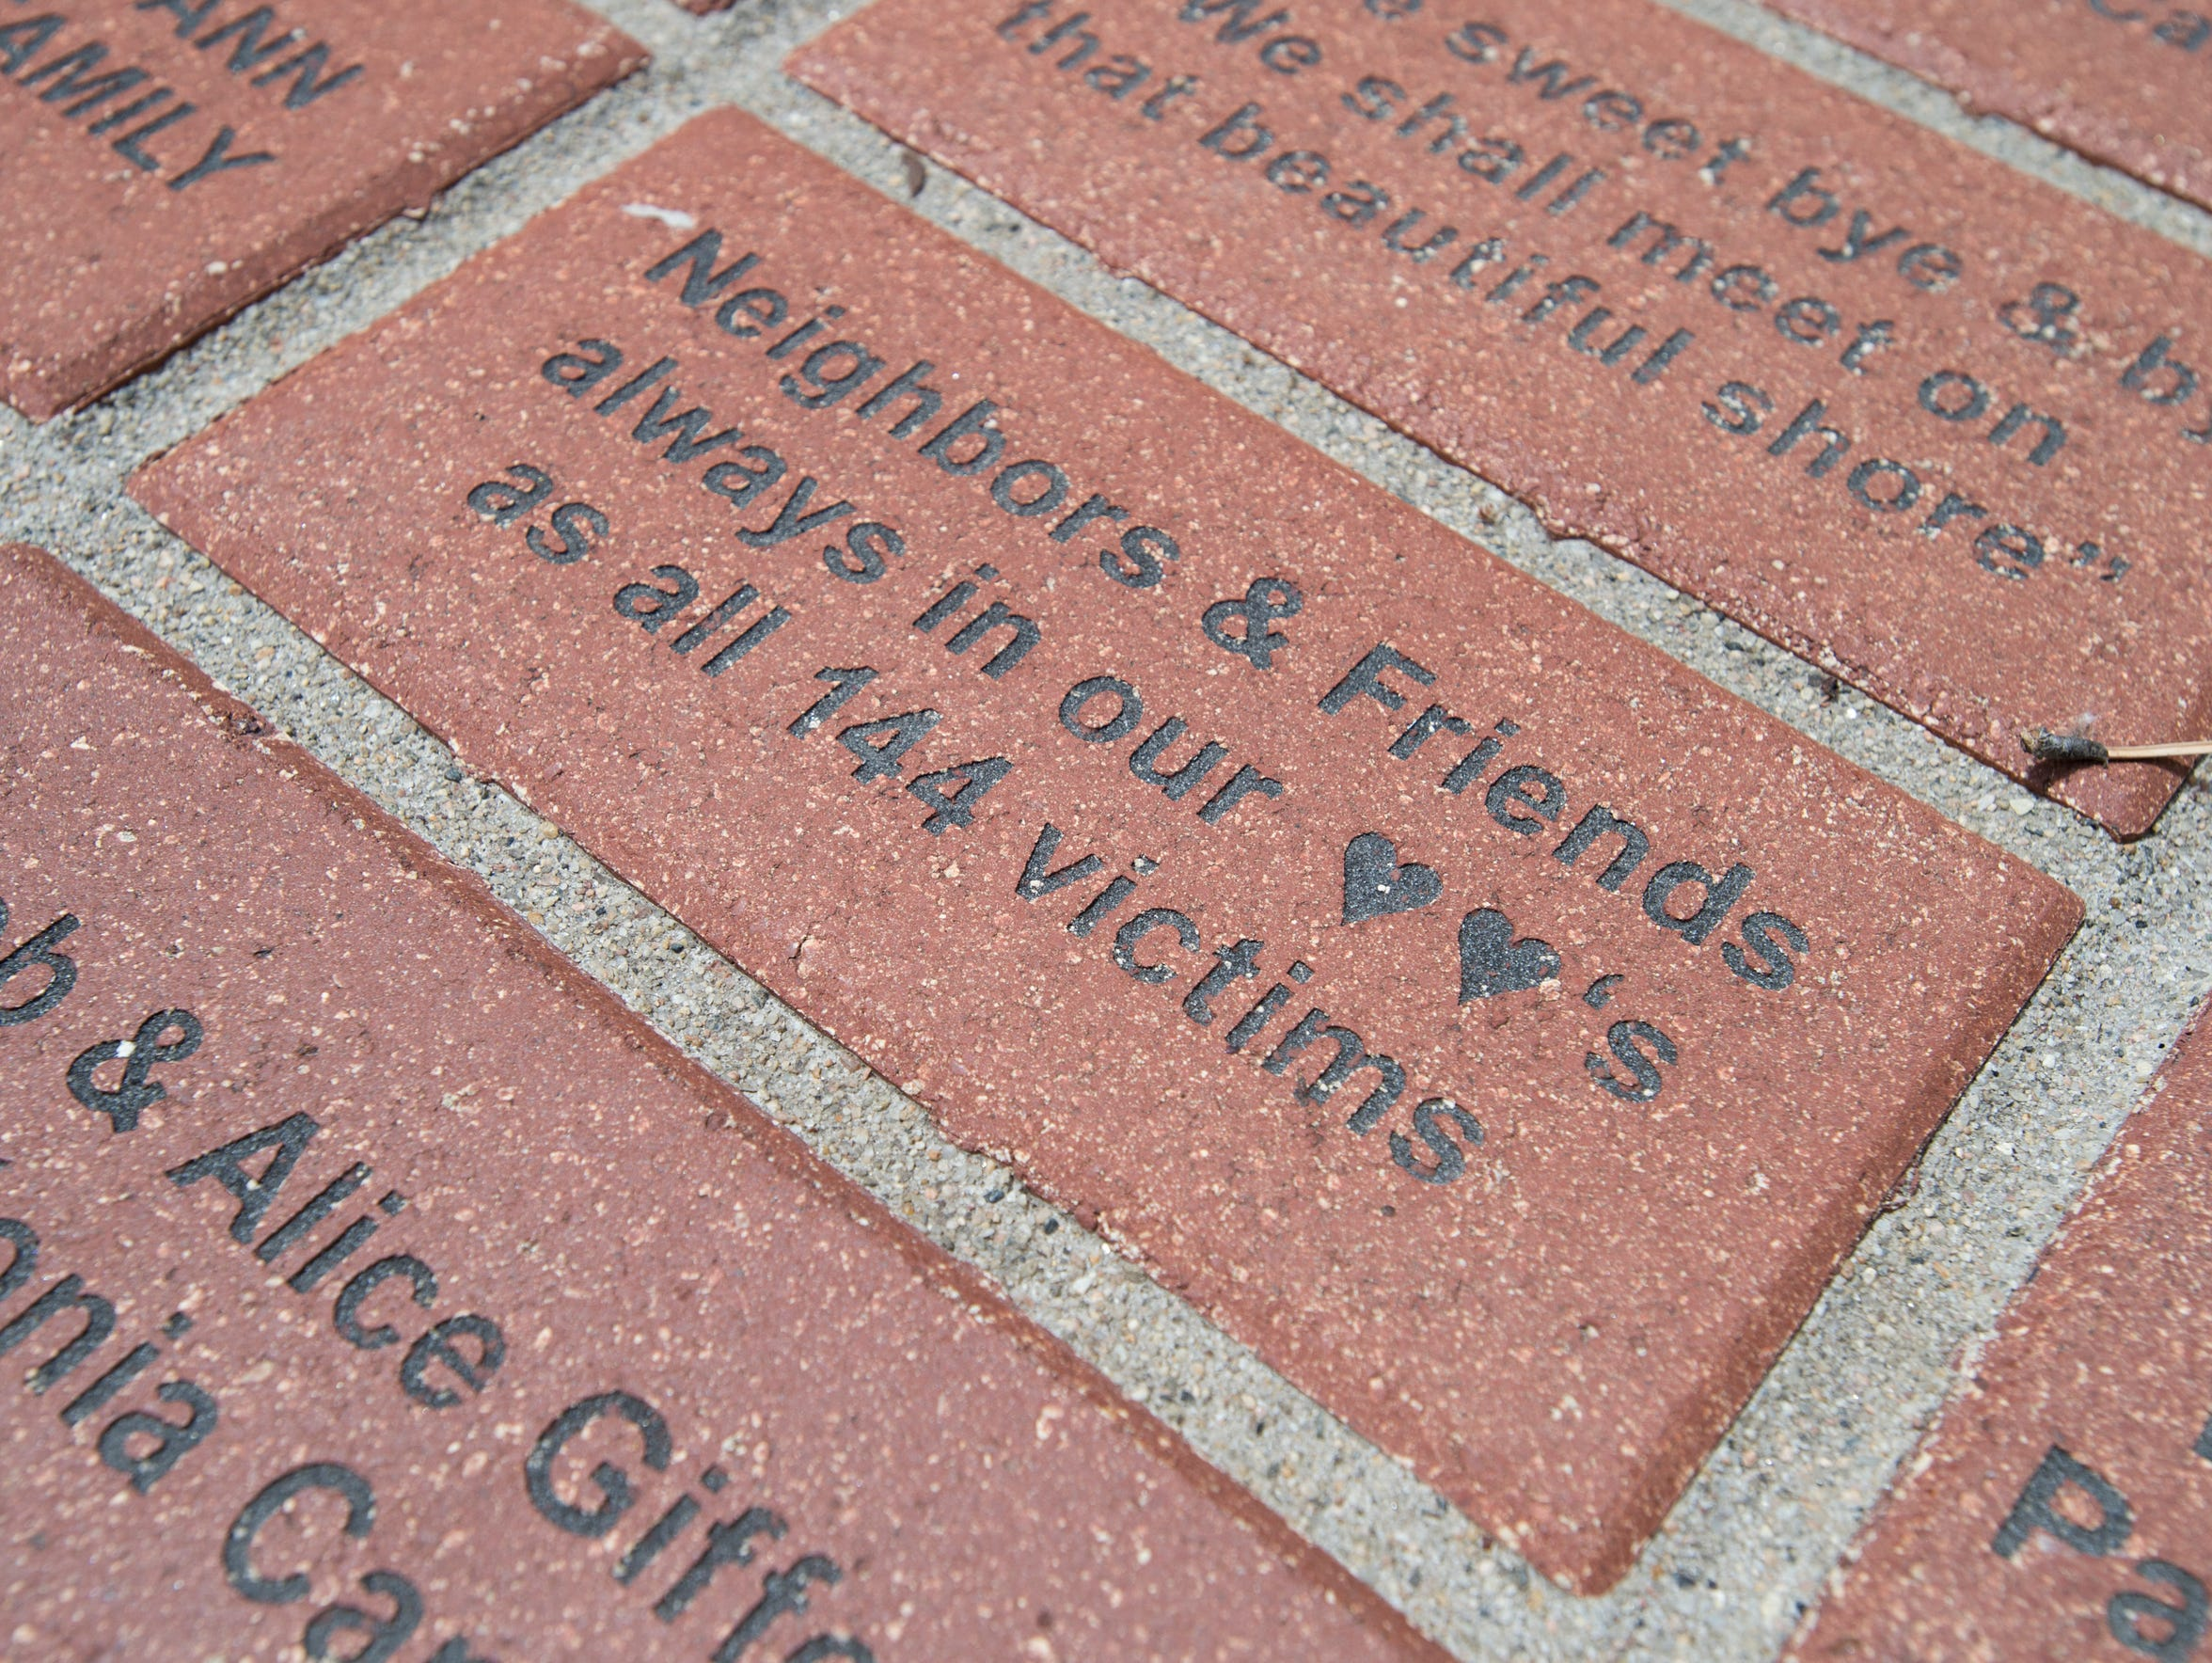 Bricks serve as a memory of the victims in the 1976